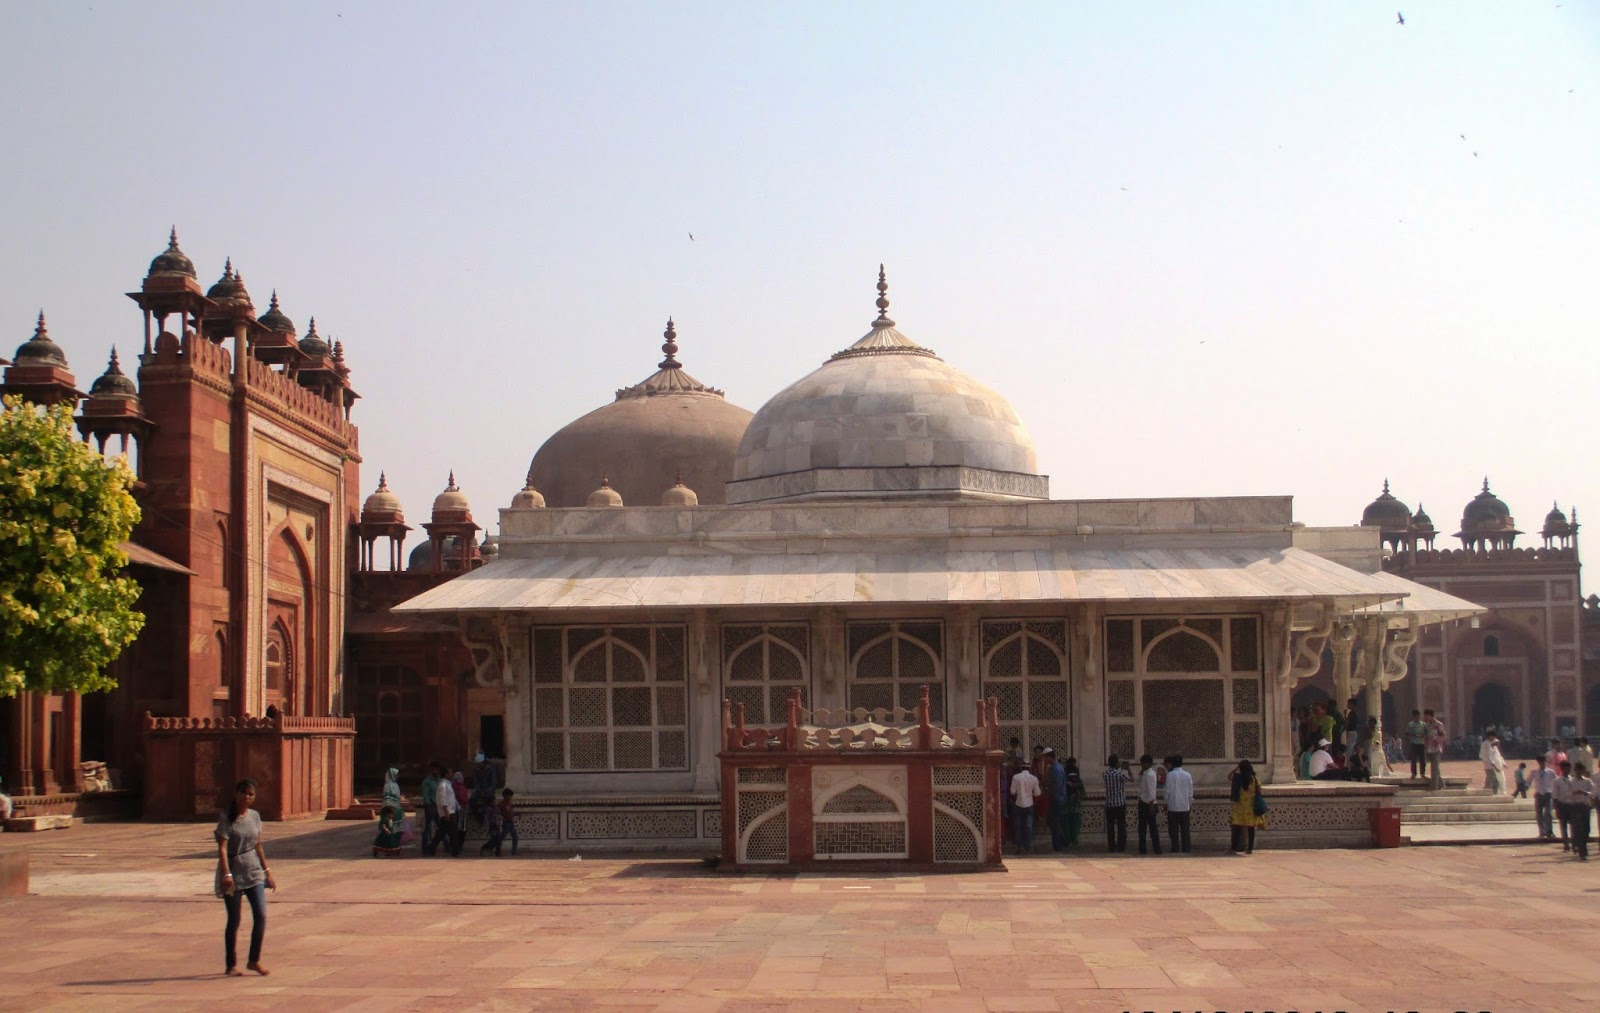 red fort just behind the side tomb of jama masjid essay Find paragraph, long and short essay on red fort (lal quila) for your kids red fort is the fort built of red sandstone by the fifth mughal jama masjid, the.